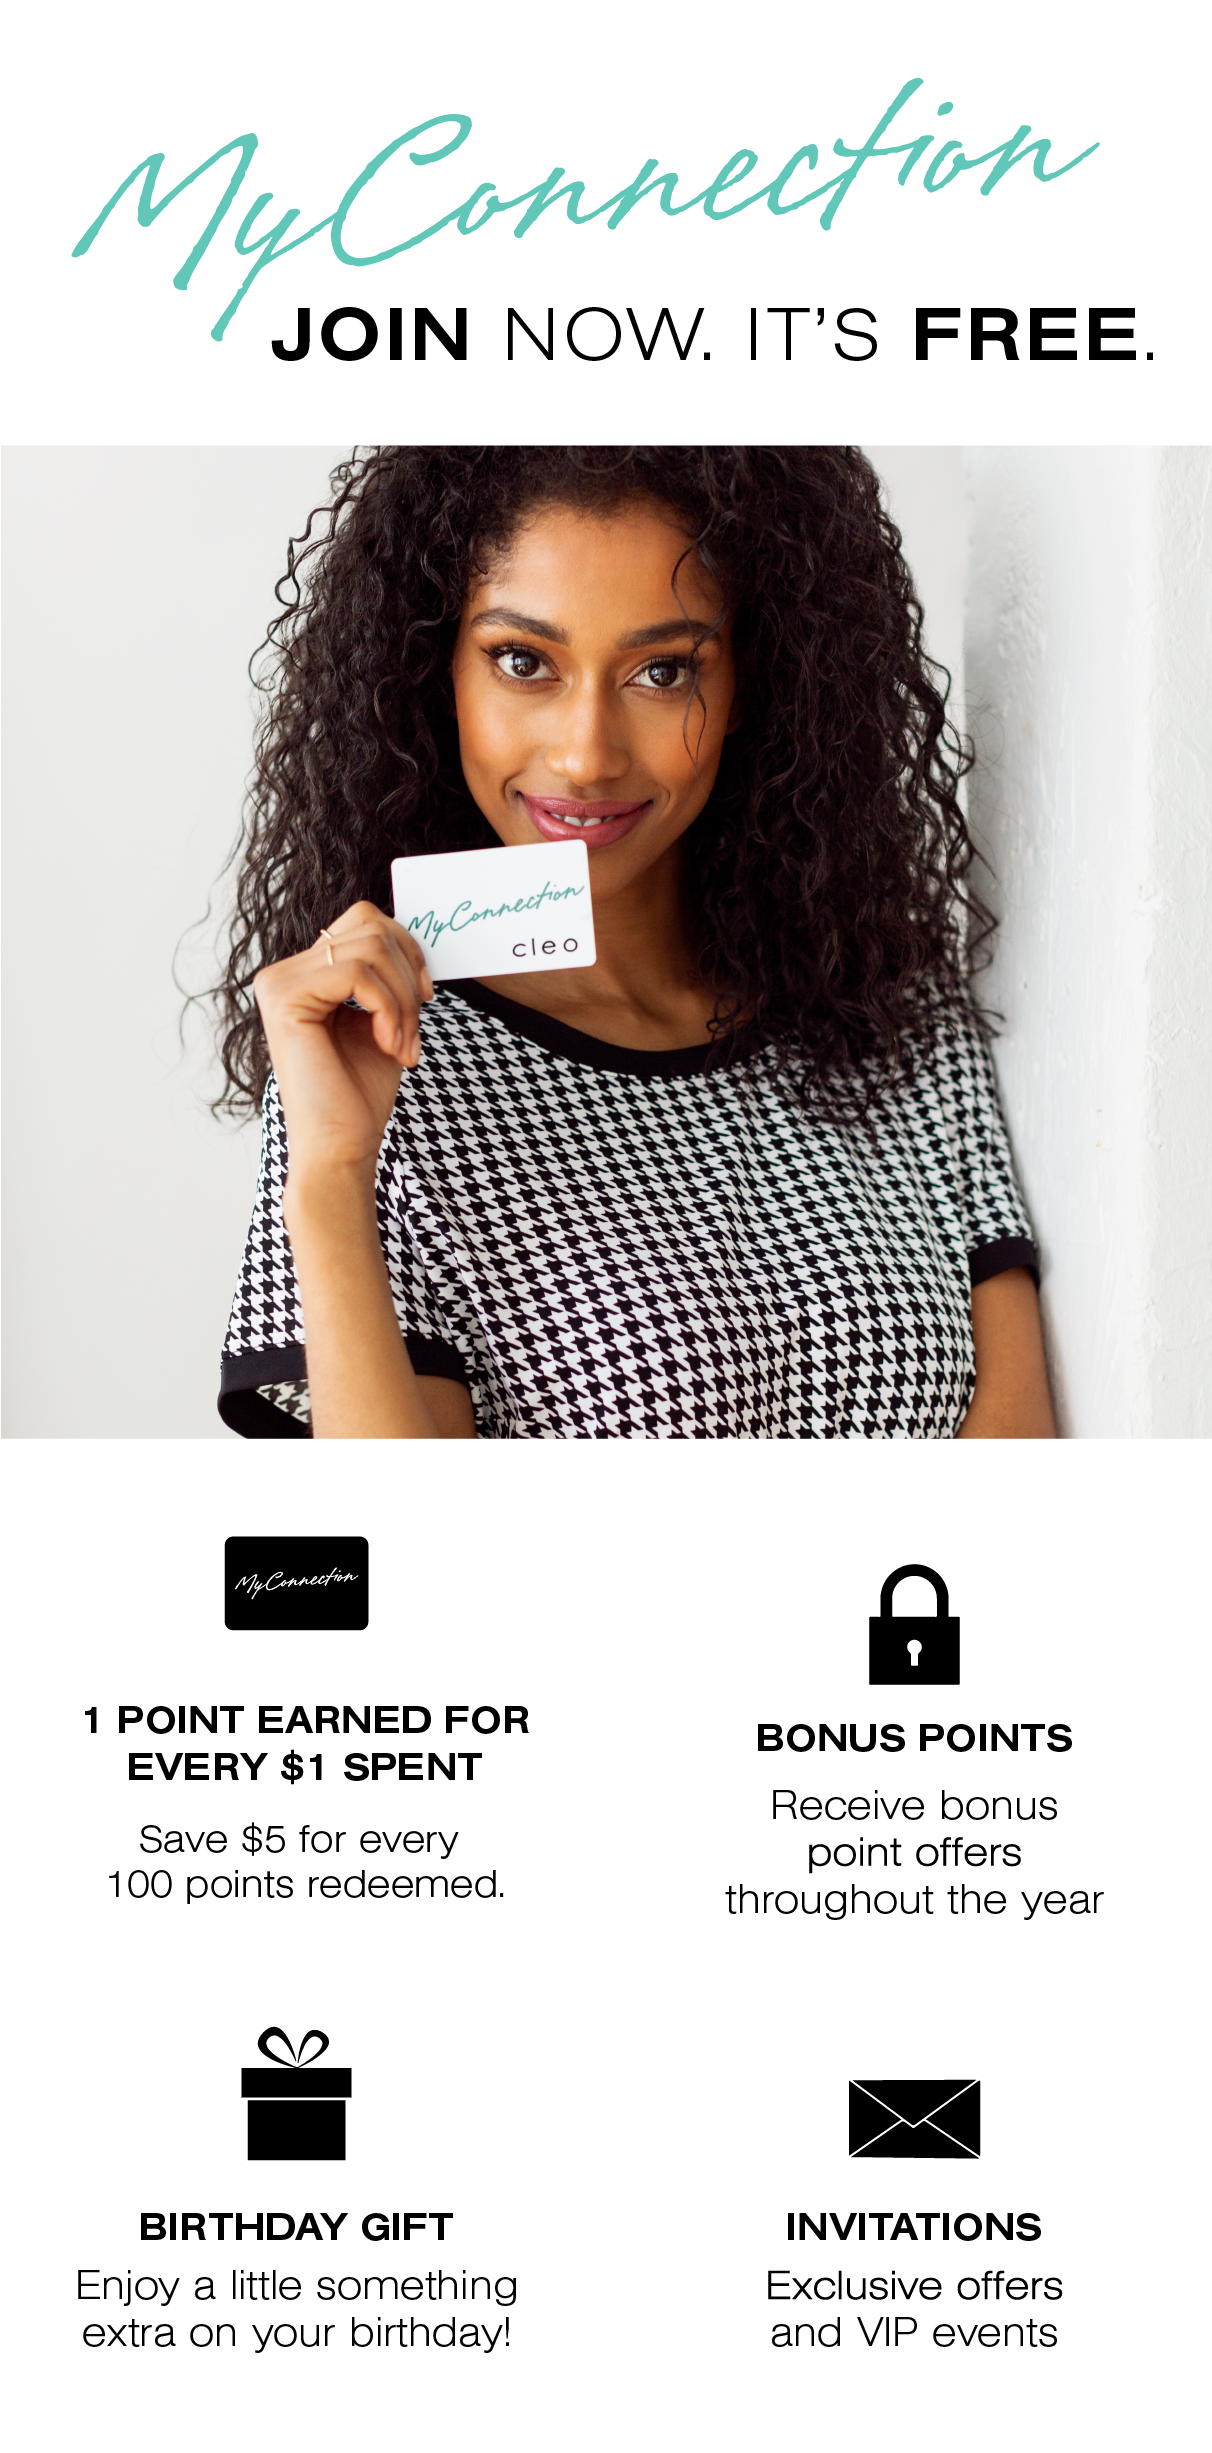 My Connection, join now. It's free. 1 point earned for every $1 spent. 500 points=$25 off. 1000 points = $50 off. 1500 points= $75 off. Bonus Points. Receive bonus point offers throughout the year. Birthday Gift. Enjoy a little something extra on your birthday! Invitations. Exclusive offers and VIP events.